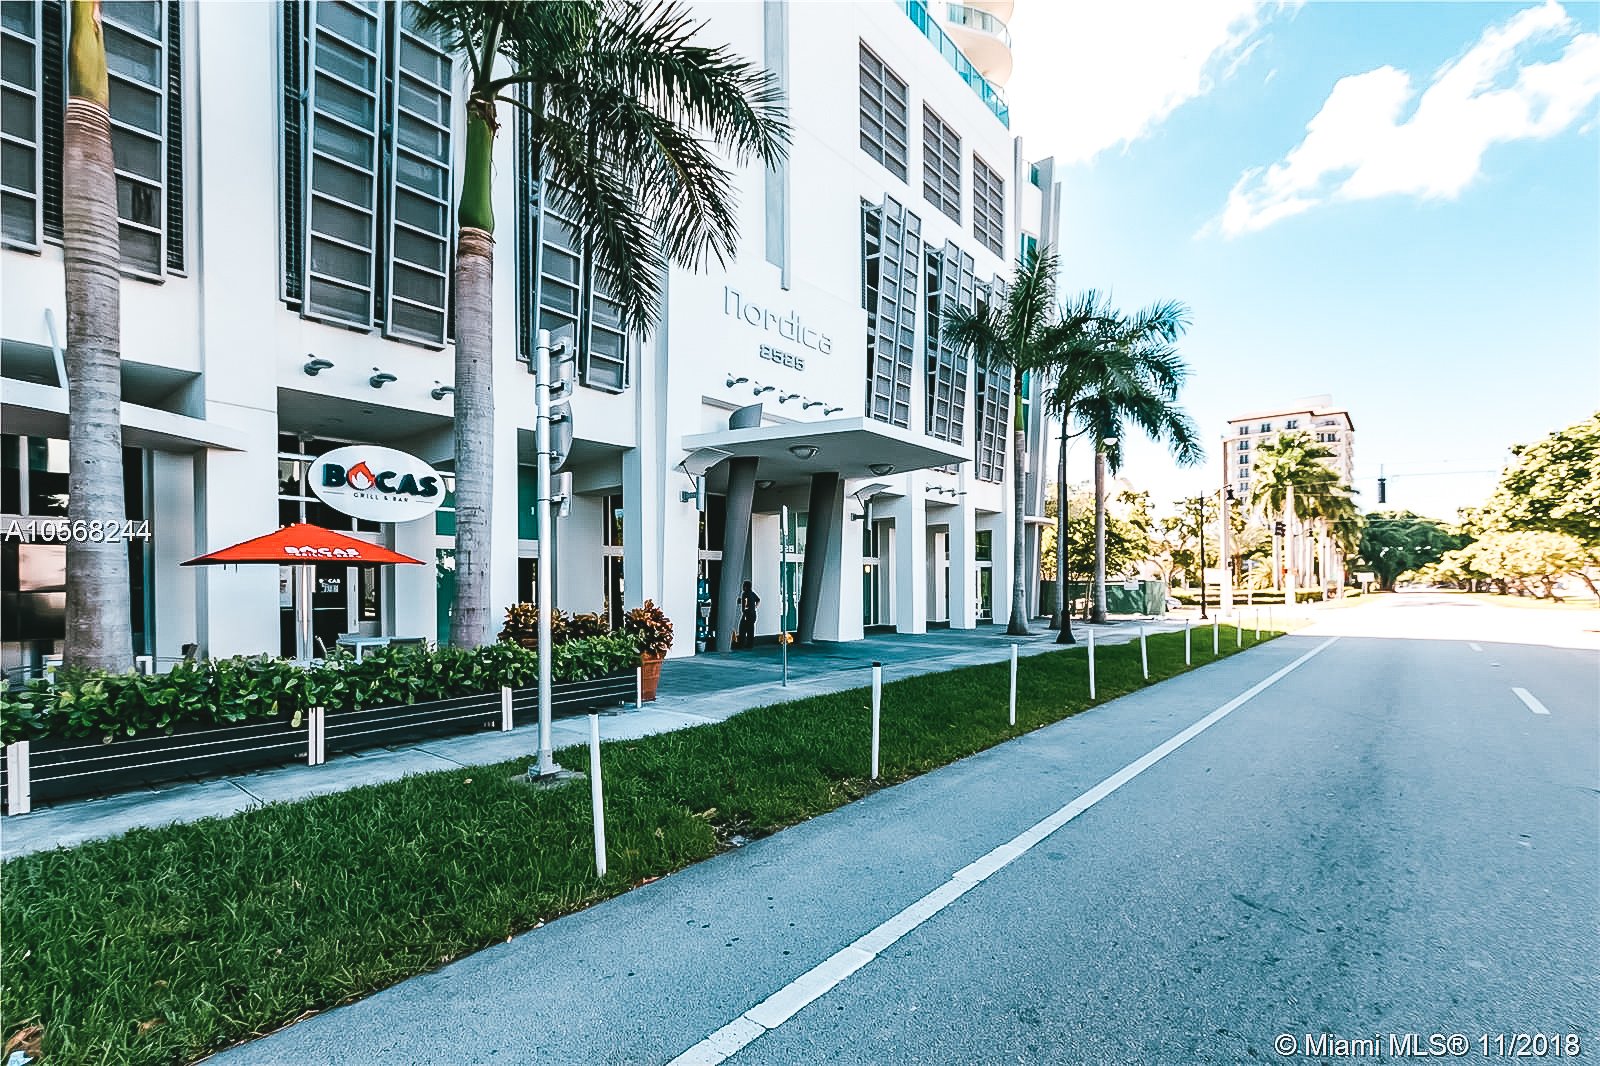 Nordica - Address: 2525 SW 3 Avenue, Miami, FL 33129Number of Units: 130Info: Lourdes Cuervo, President | Maria Casanova, Property Manager